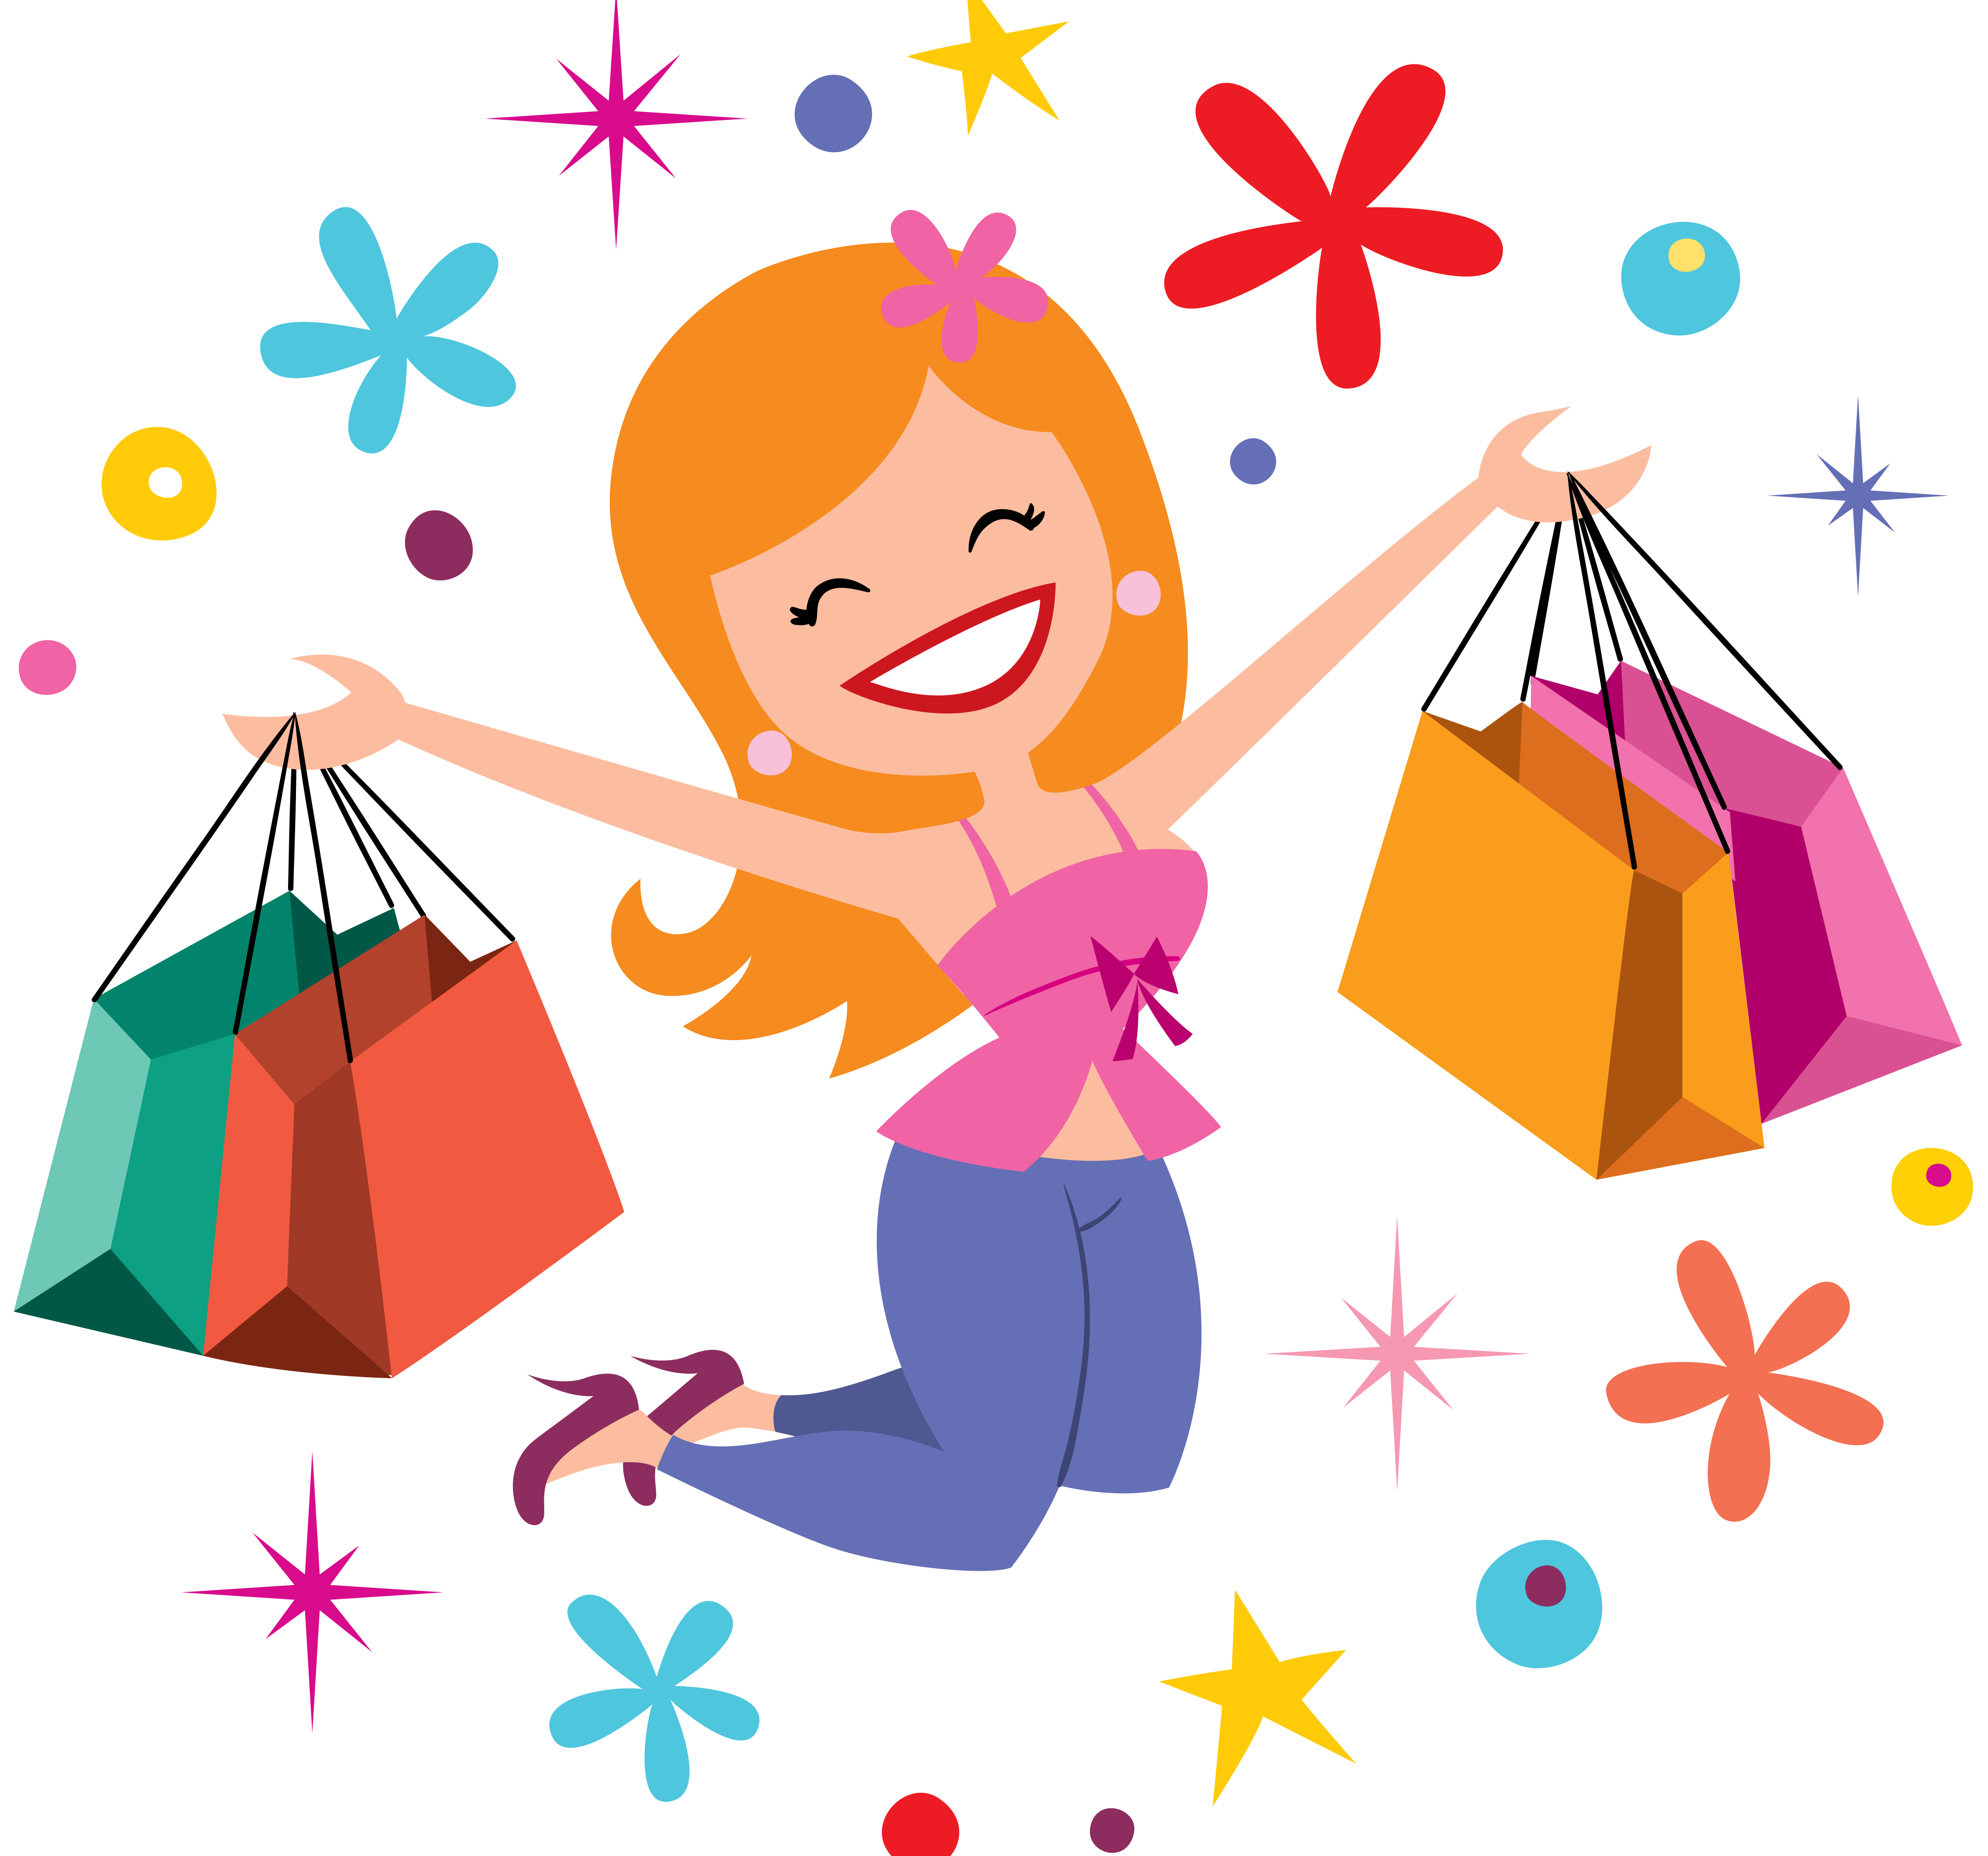 Free Customers Cliparts, Download Free Clip Art, Free Clip Art on.